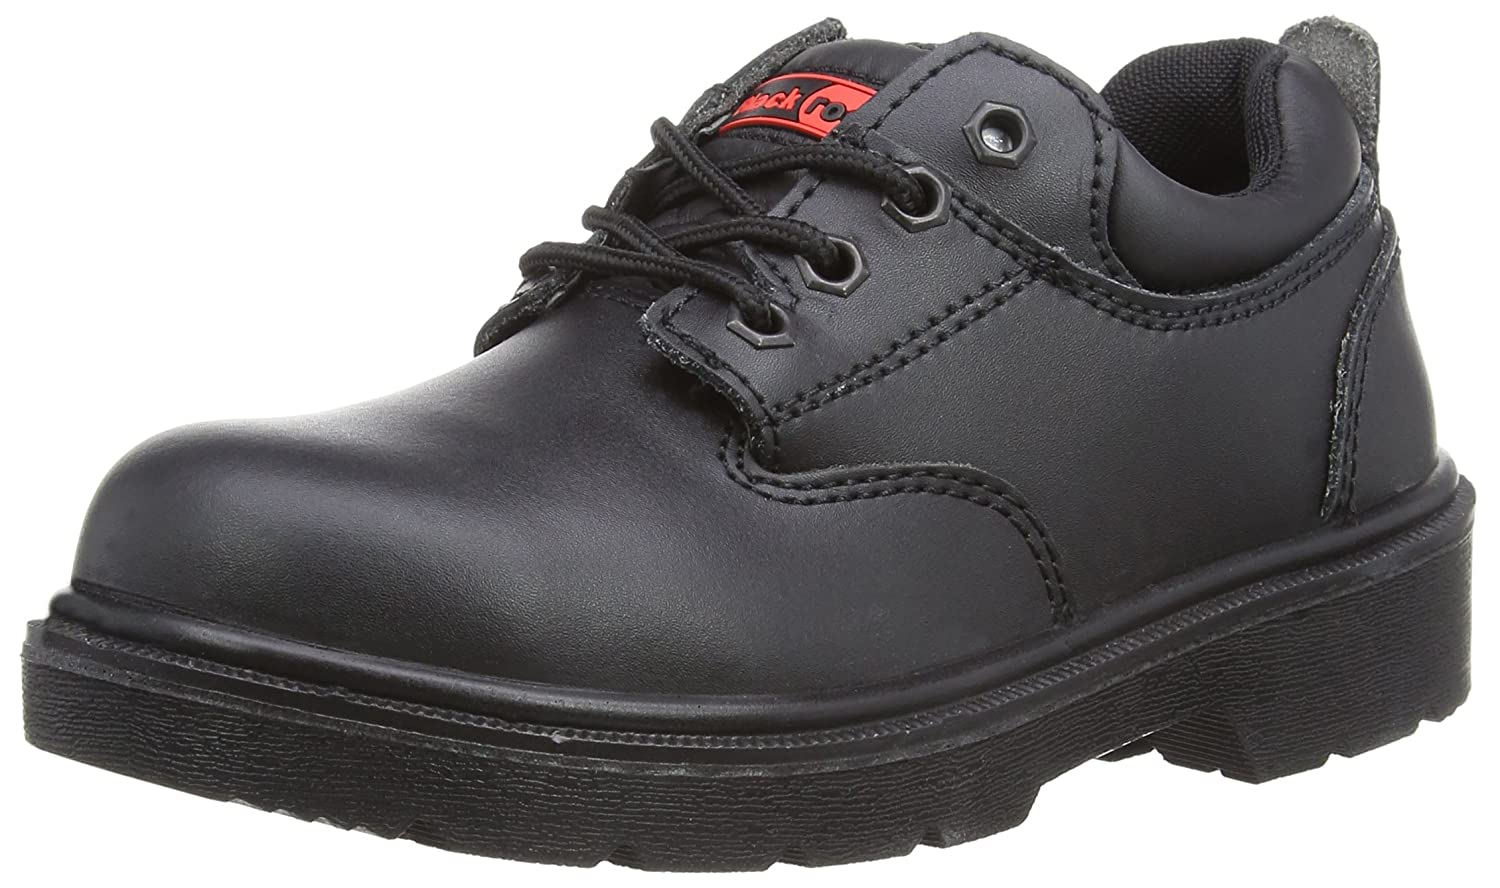 Blackrock Ultimate Black Leather Steel Toe Caps + Midsole Shoes - UK 13 SF32